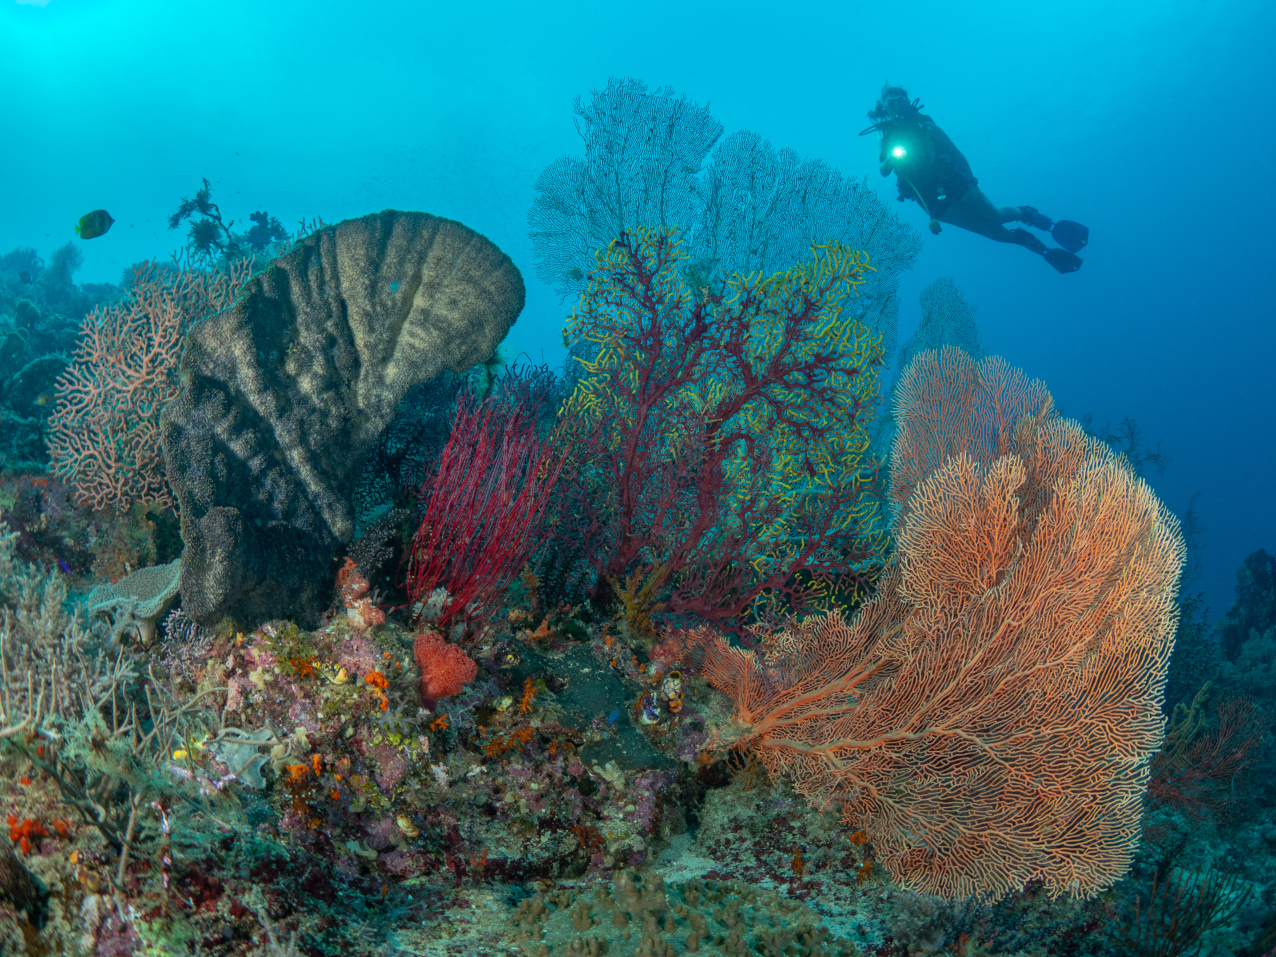 (English) several aquatic plants in fan-shape with a scuba diver in the background